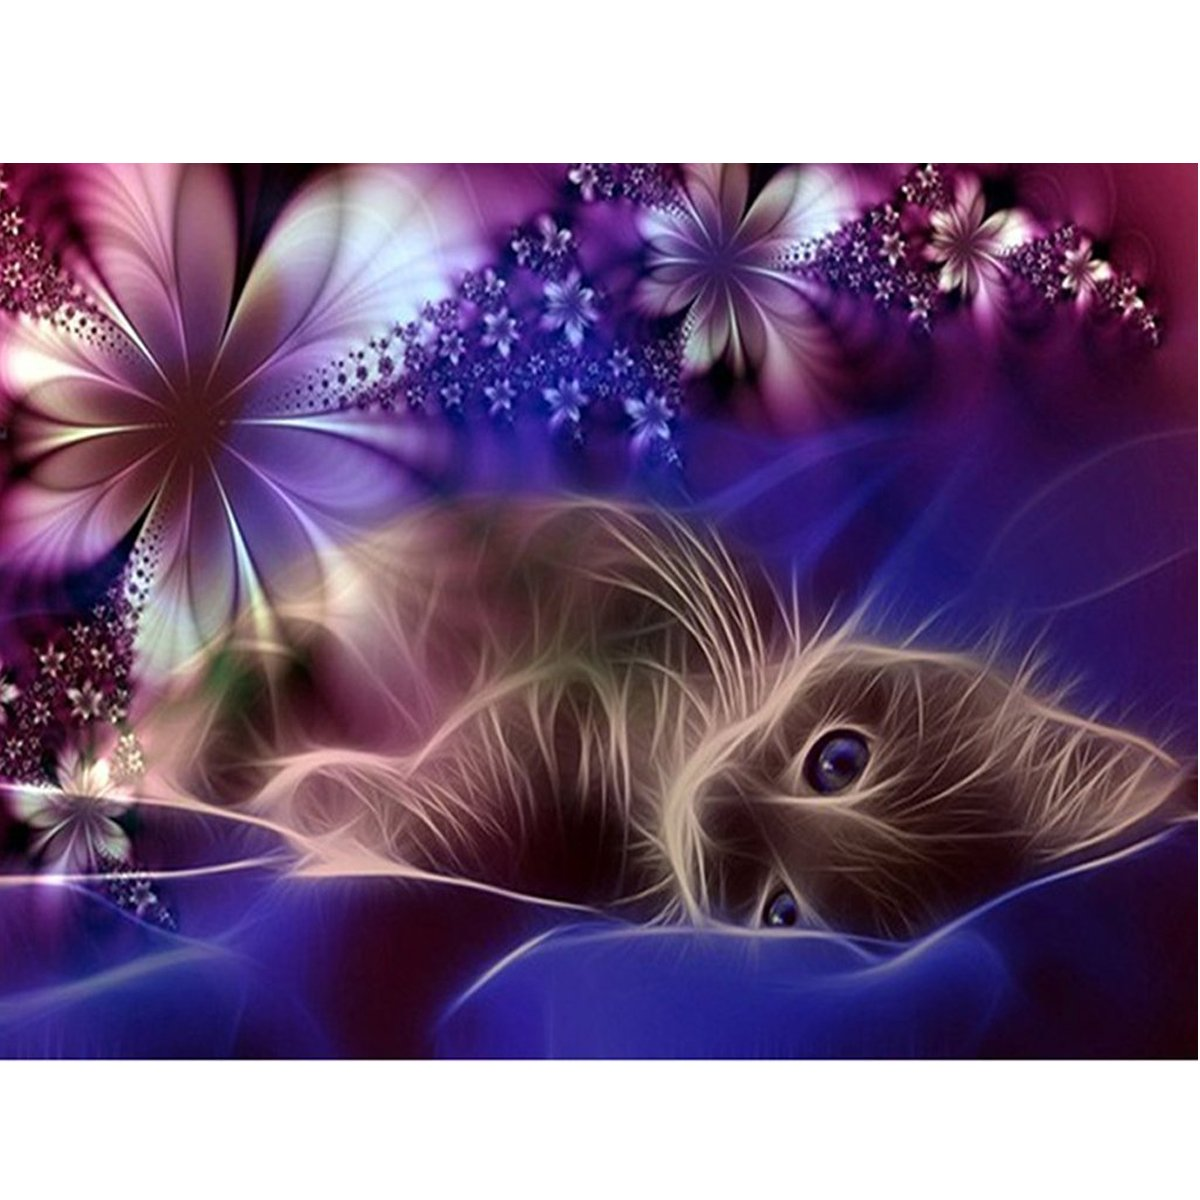 5D DIY Diamond Painting Kits Full Drill for Adults Crystal Rhinestone Embroidery Cross Stitch Arts Craft Canvas Wall Decor Moon Cat ACRSIKR